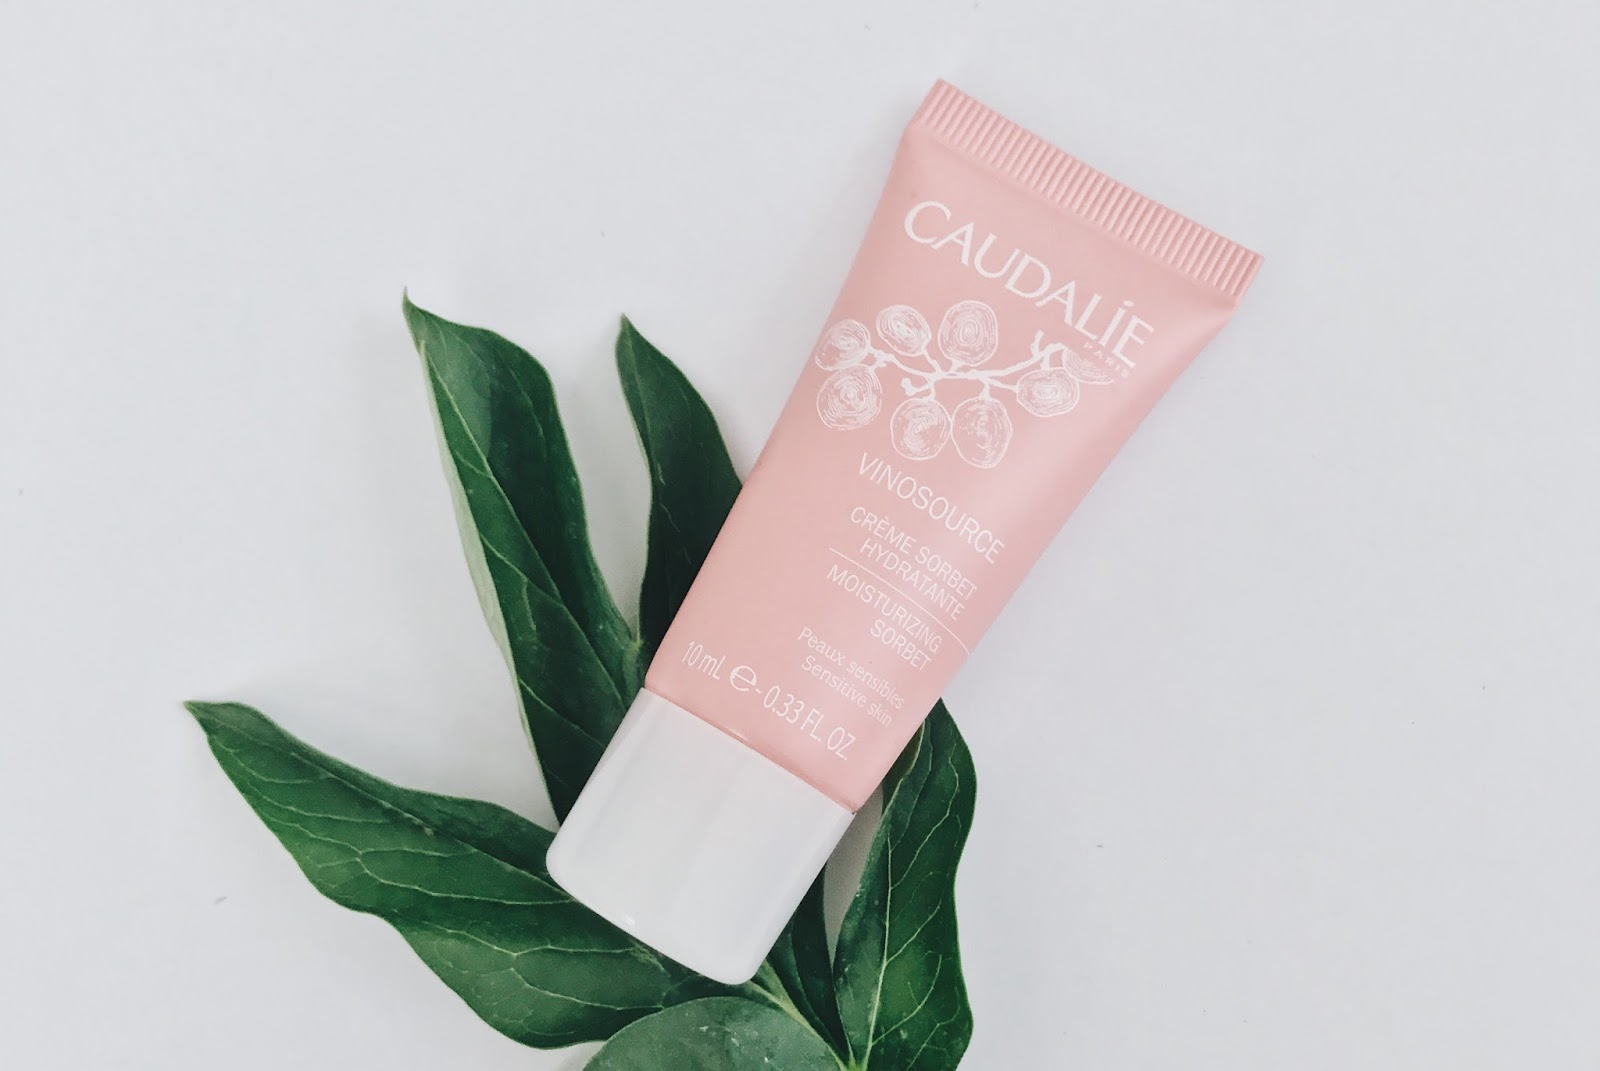 Caudalie Vinosource Moisturizing Sorbet: Review by The Jen Project. Smells sweet and delicious but doesn't moisturize my combination skin enough.